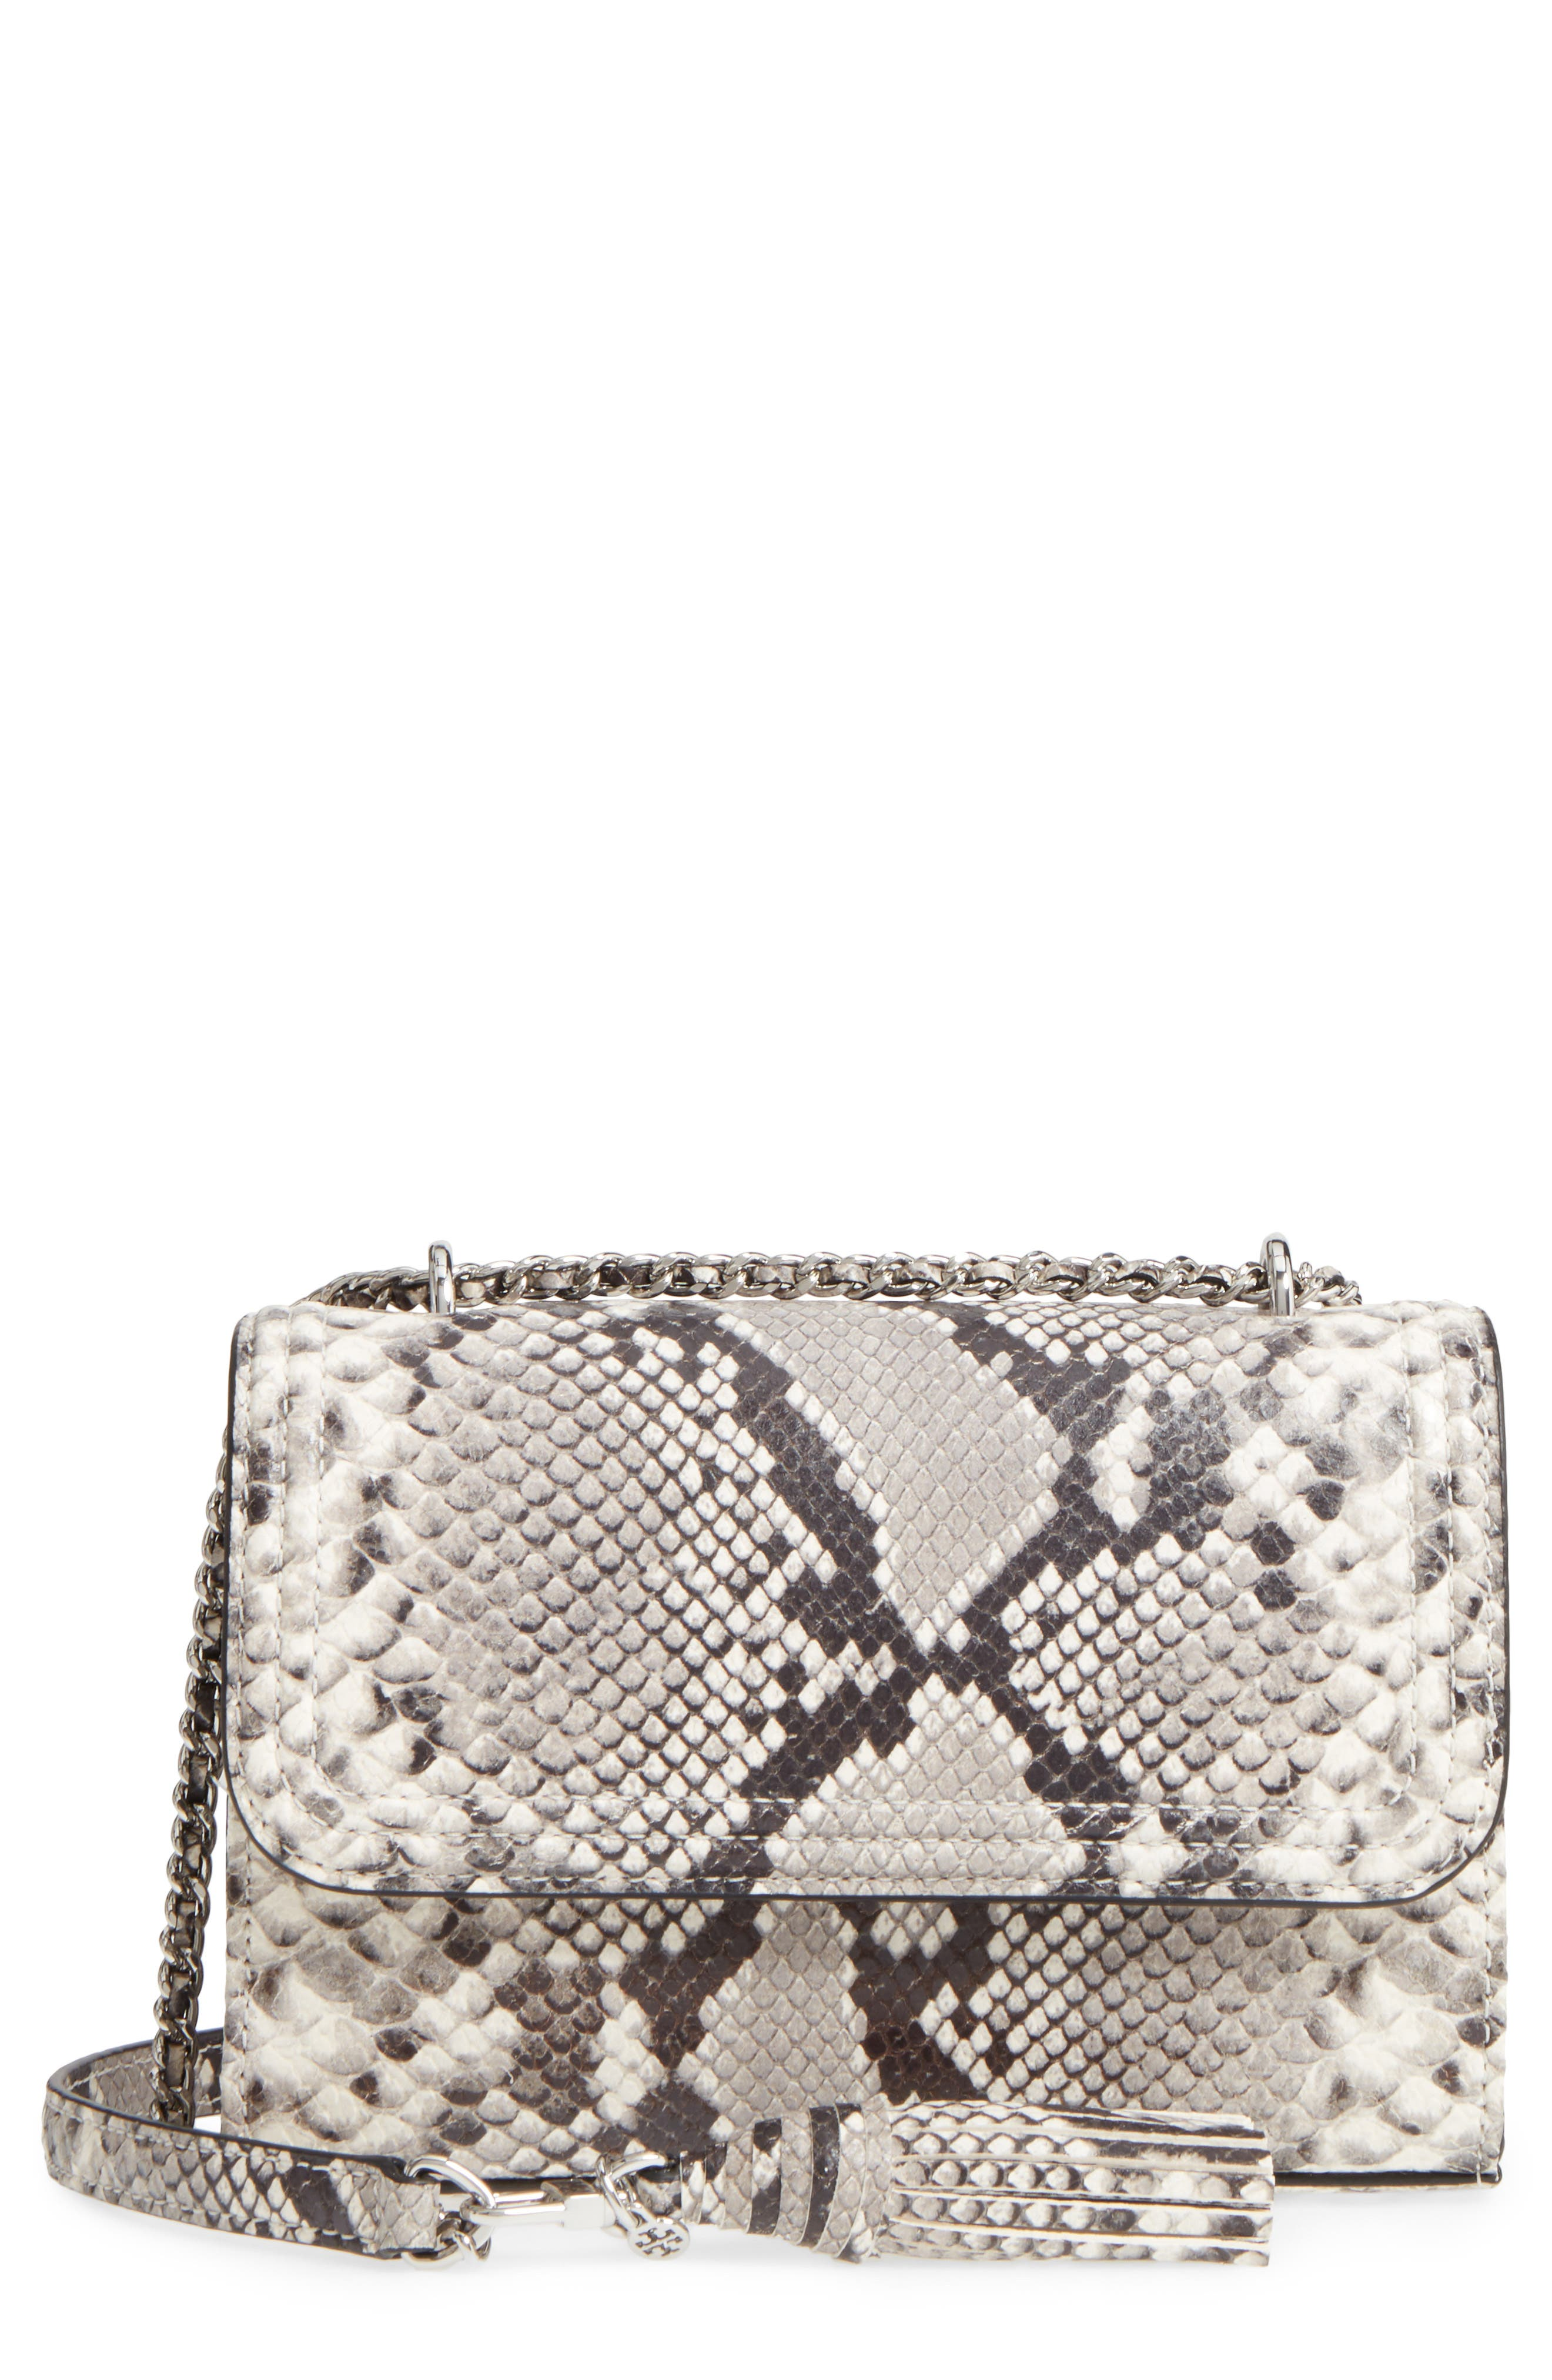 Alternate Image 1 Selected - Tory Burch Small Fleming Leather Convertible Shoulder Bag